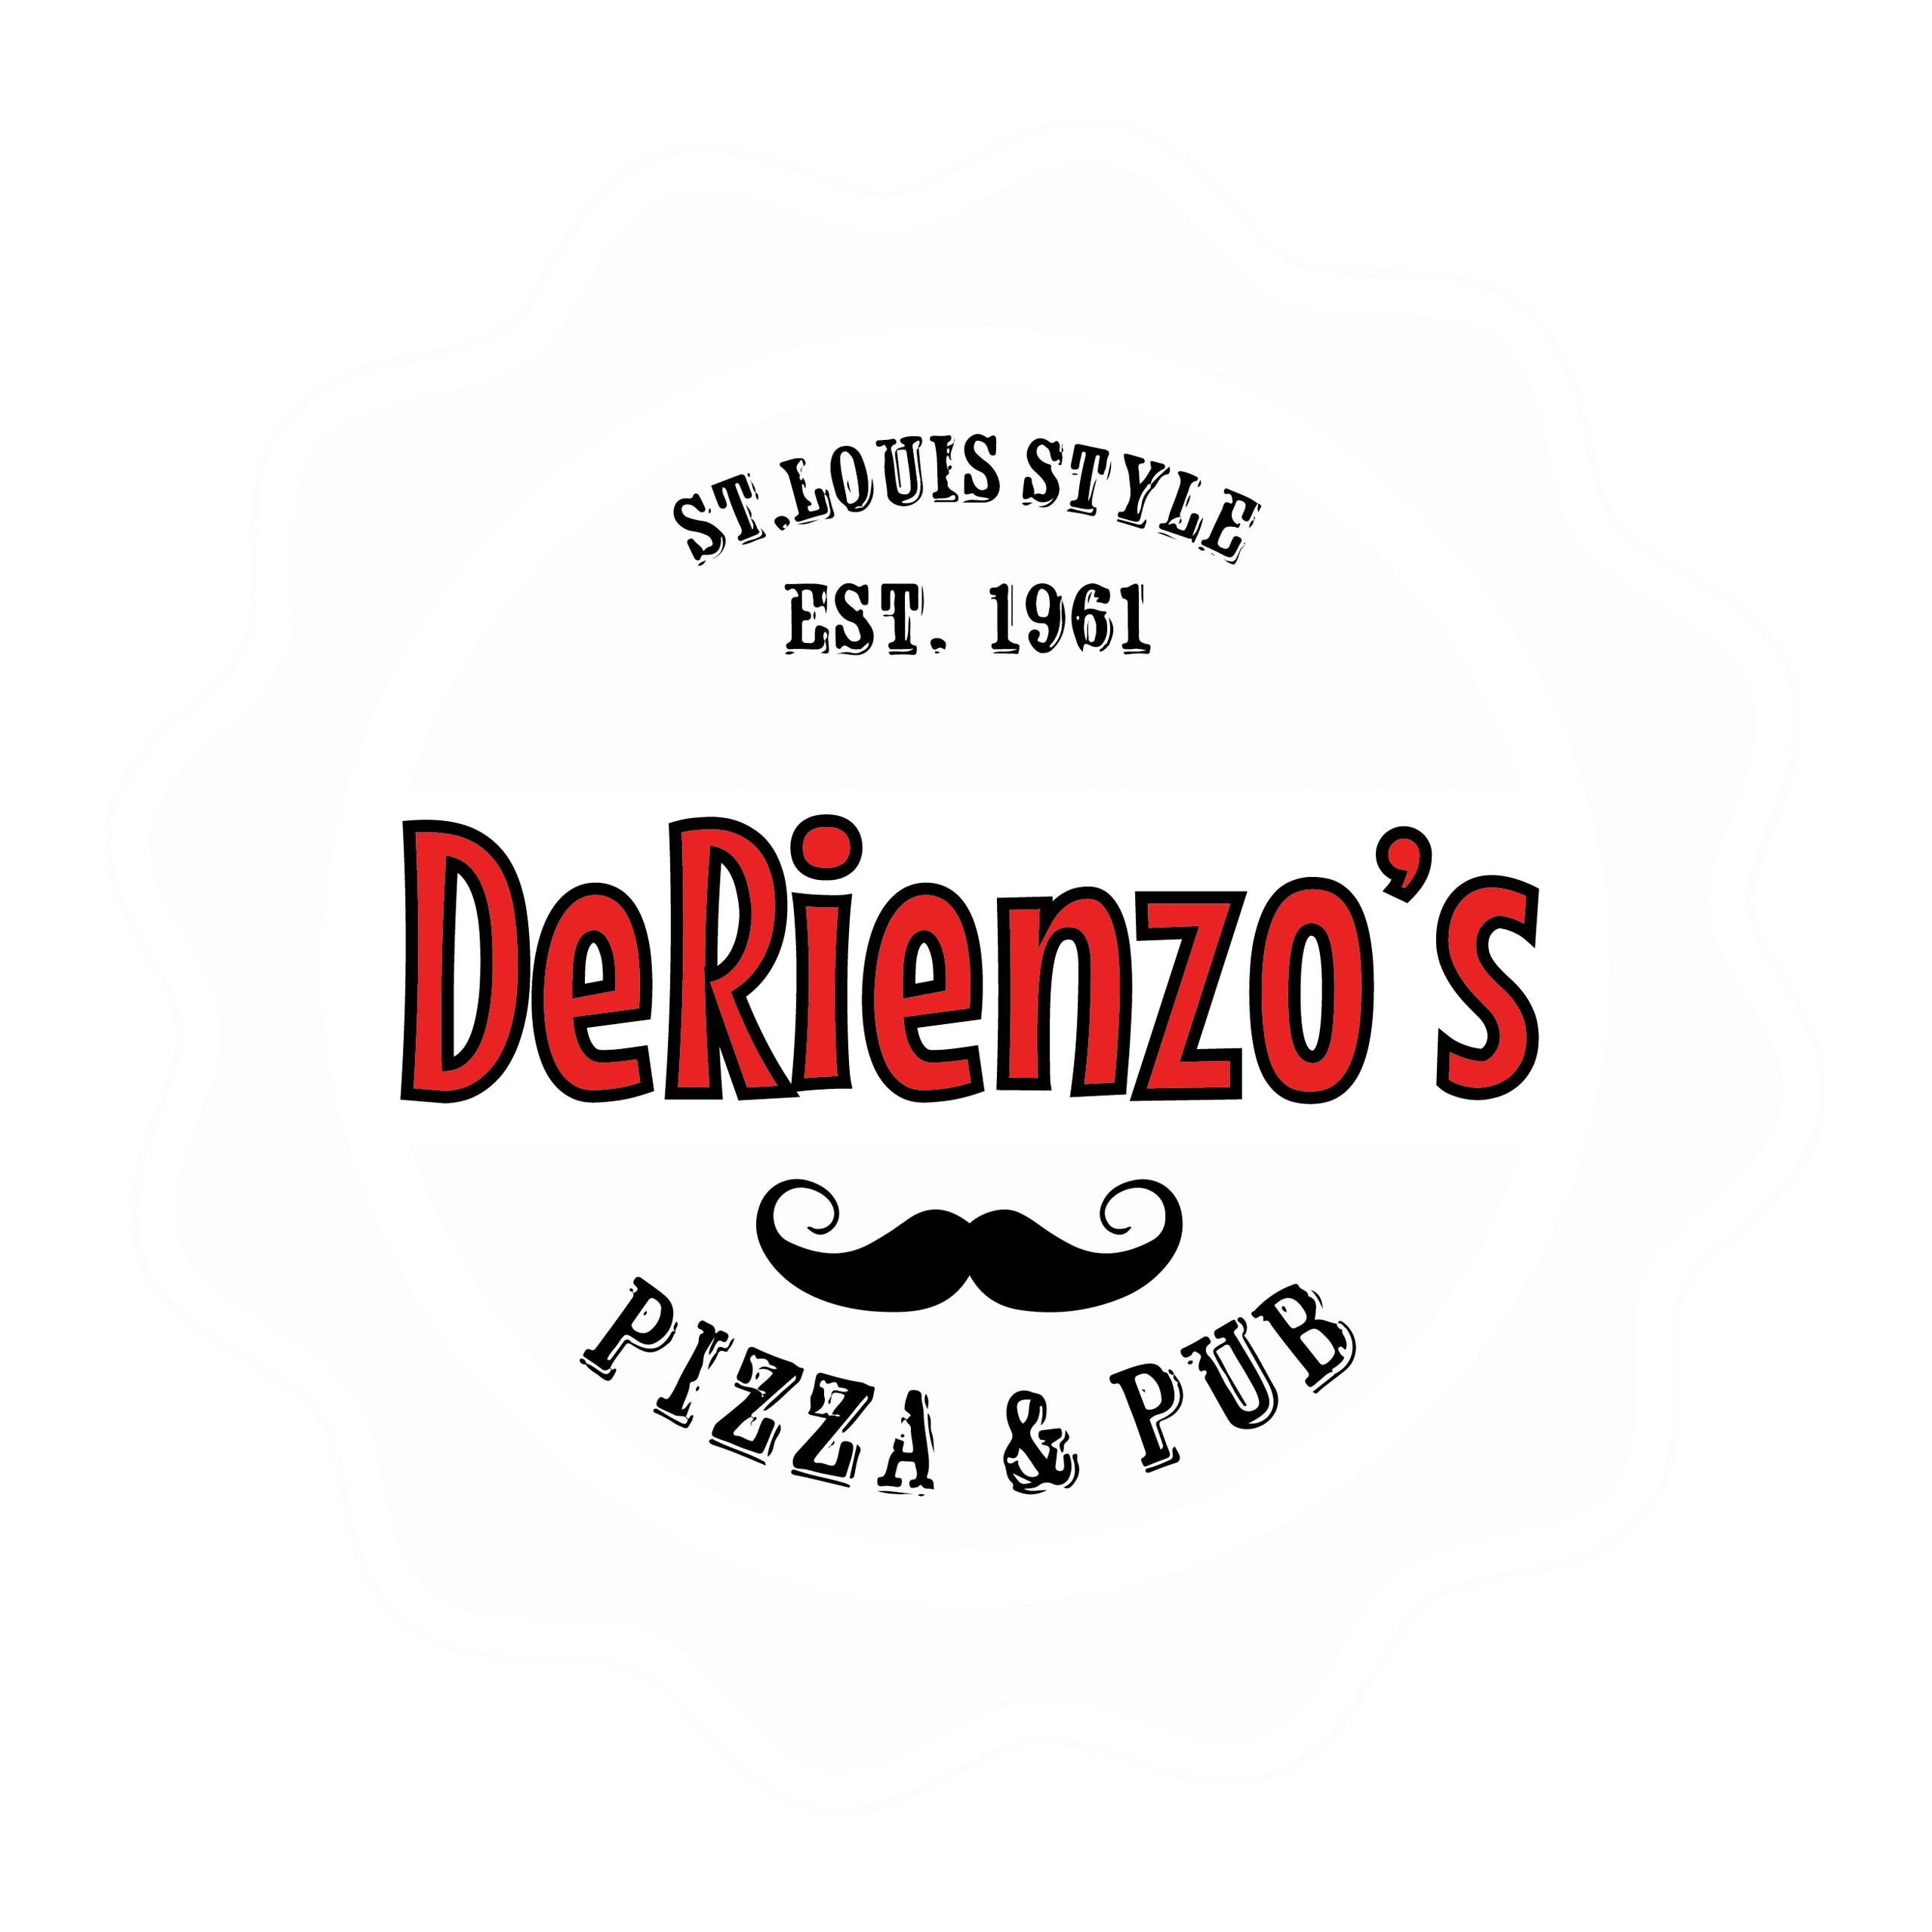 DeRienzo's Pizza & Pub best pizza beer cocktails in the city of St. Peters Missouri and St. Charles